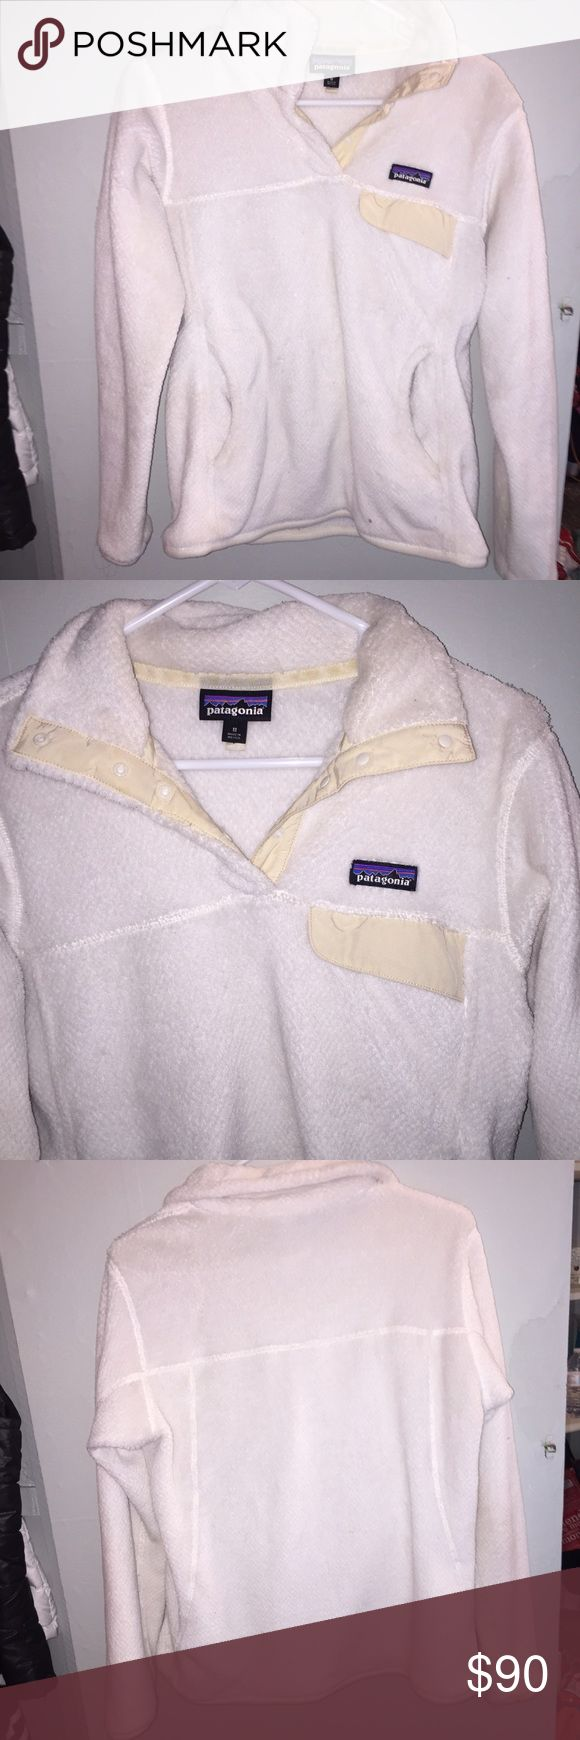 White/cream Patagonia fleece pullover Perfect condition Patagonia Sweaters